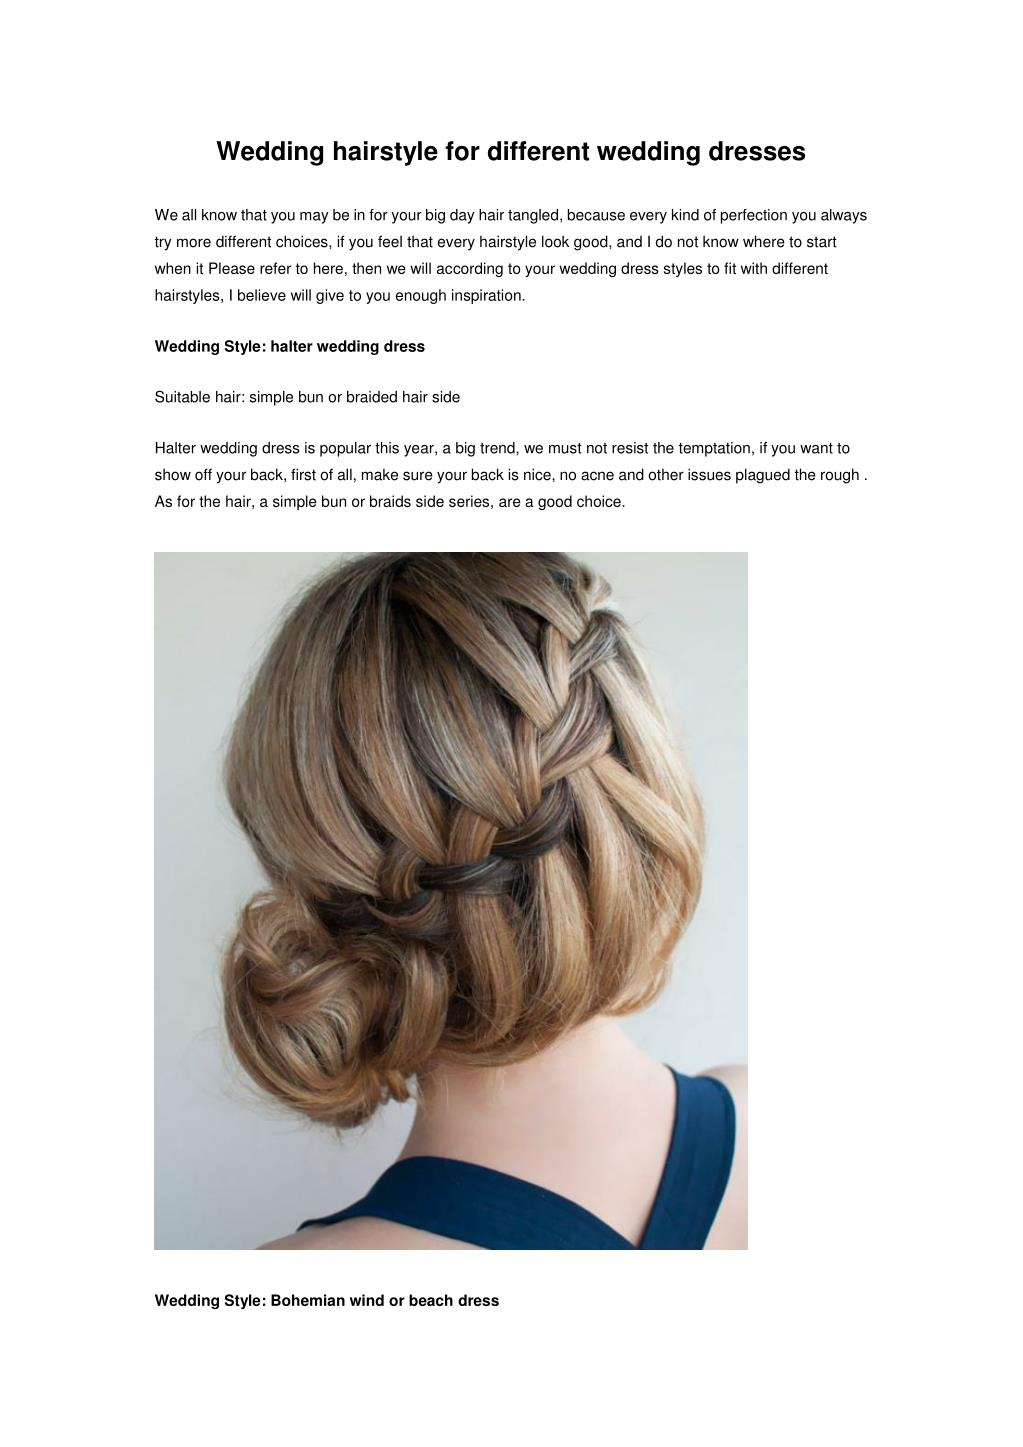 Ppt Wedding Hairstyle For Different Wedding Dresses Powerpoint